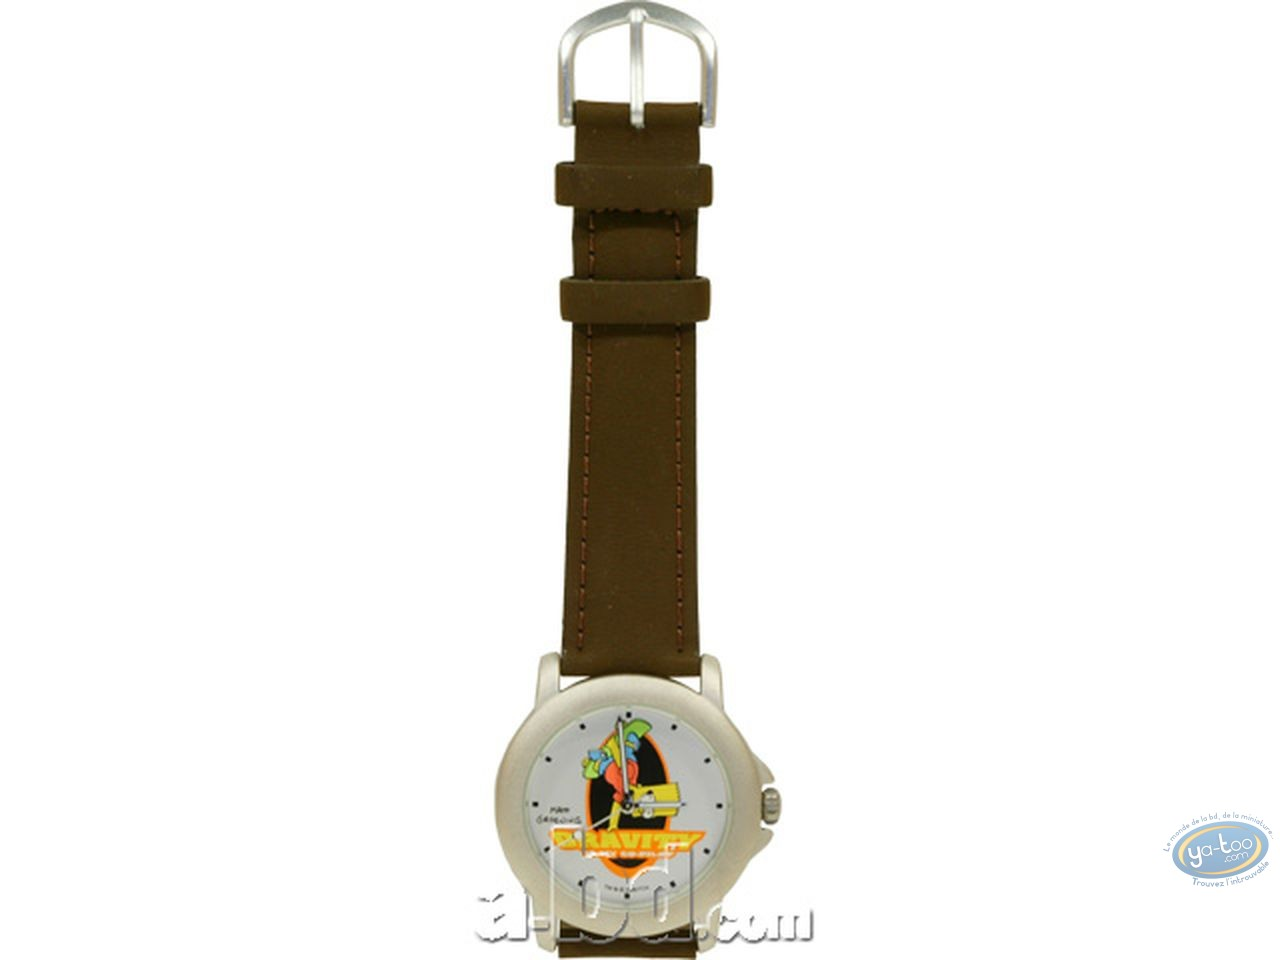 Clocks & Watches, Simpson (Les) : Watch, The Simpsons : Bart skate (leather strap)